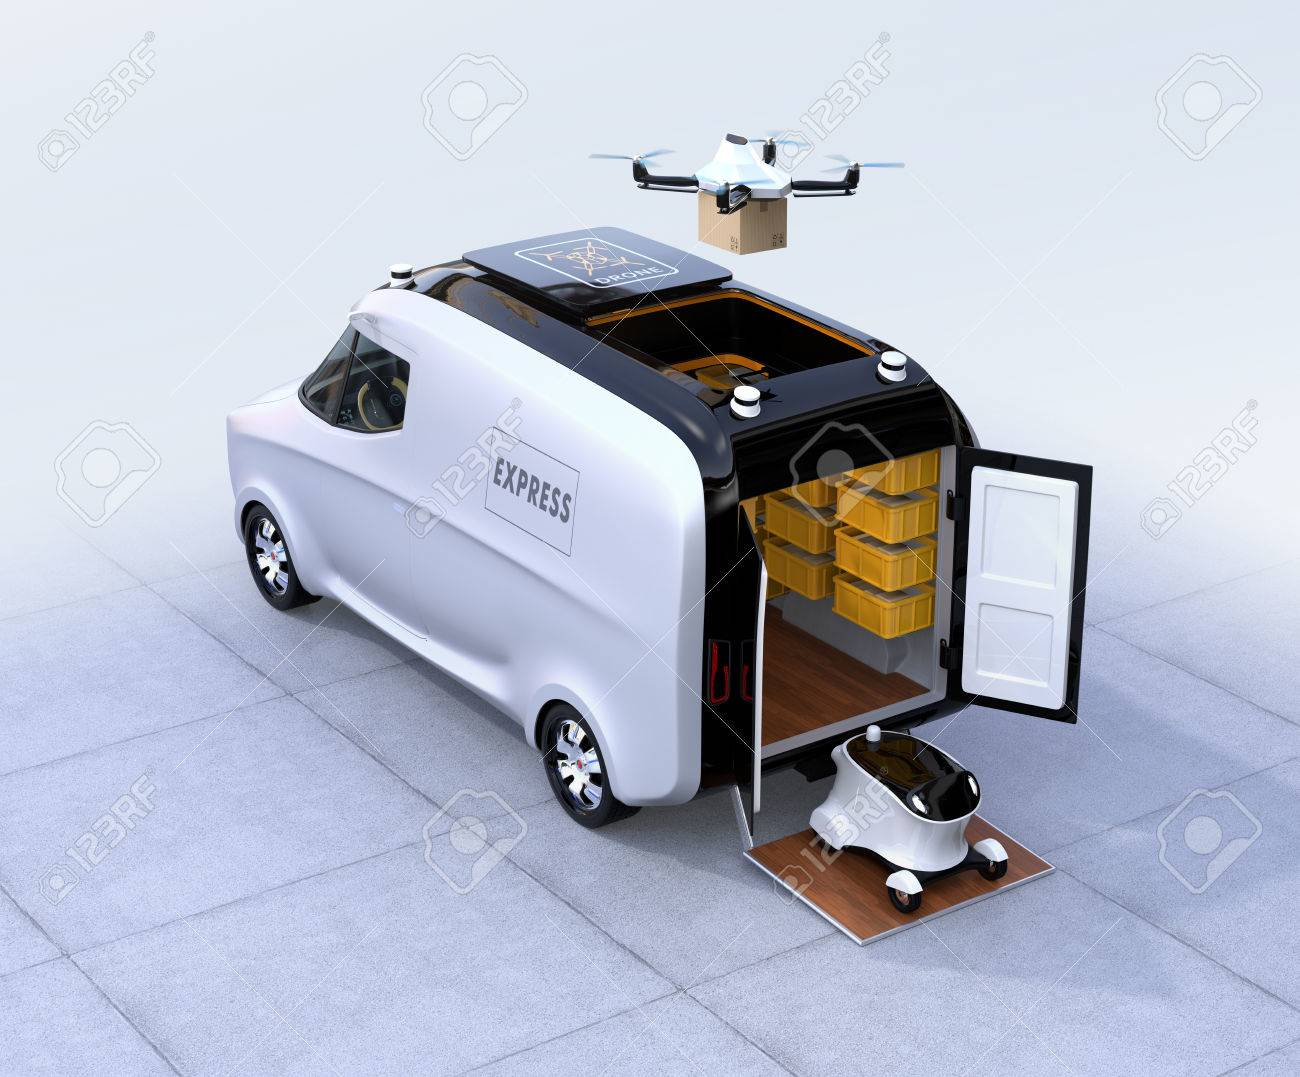 Self-driving van, drone and robot. Automatic delivery system concept. 3D rendering image. - 81802779